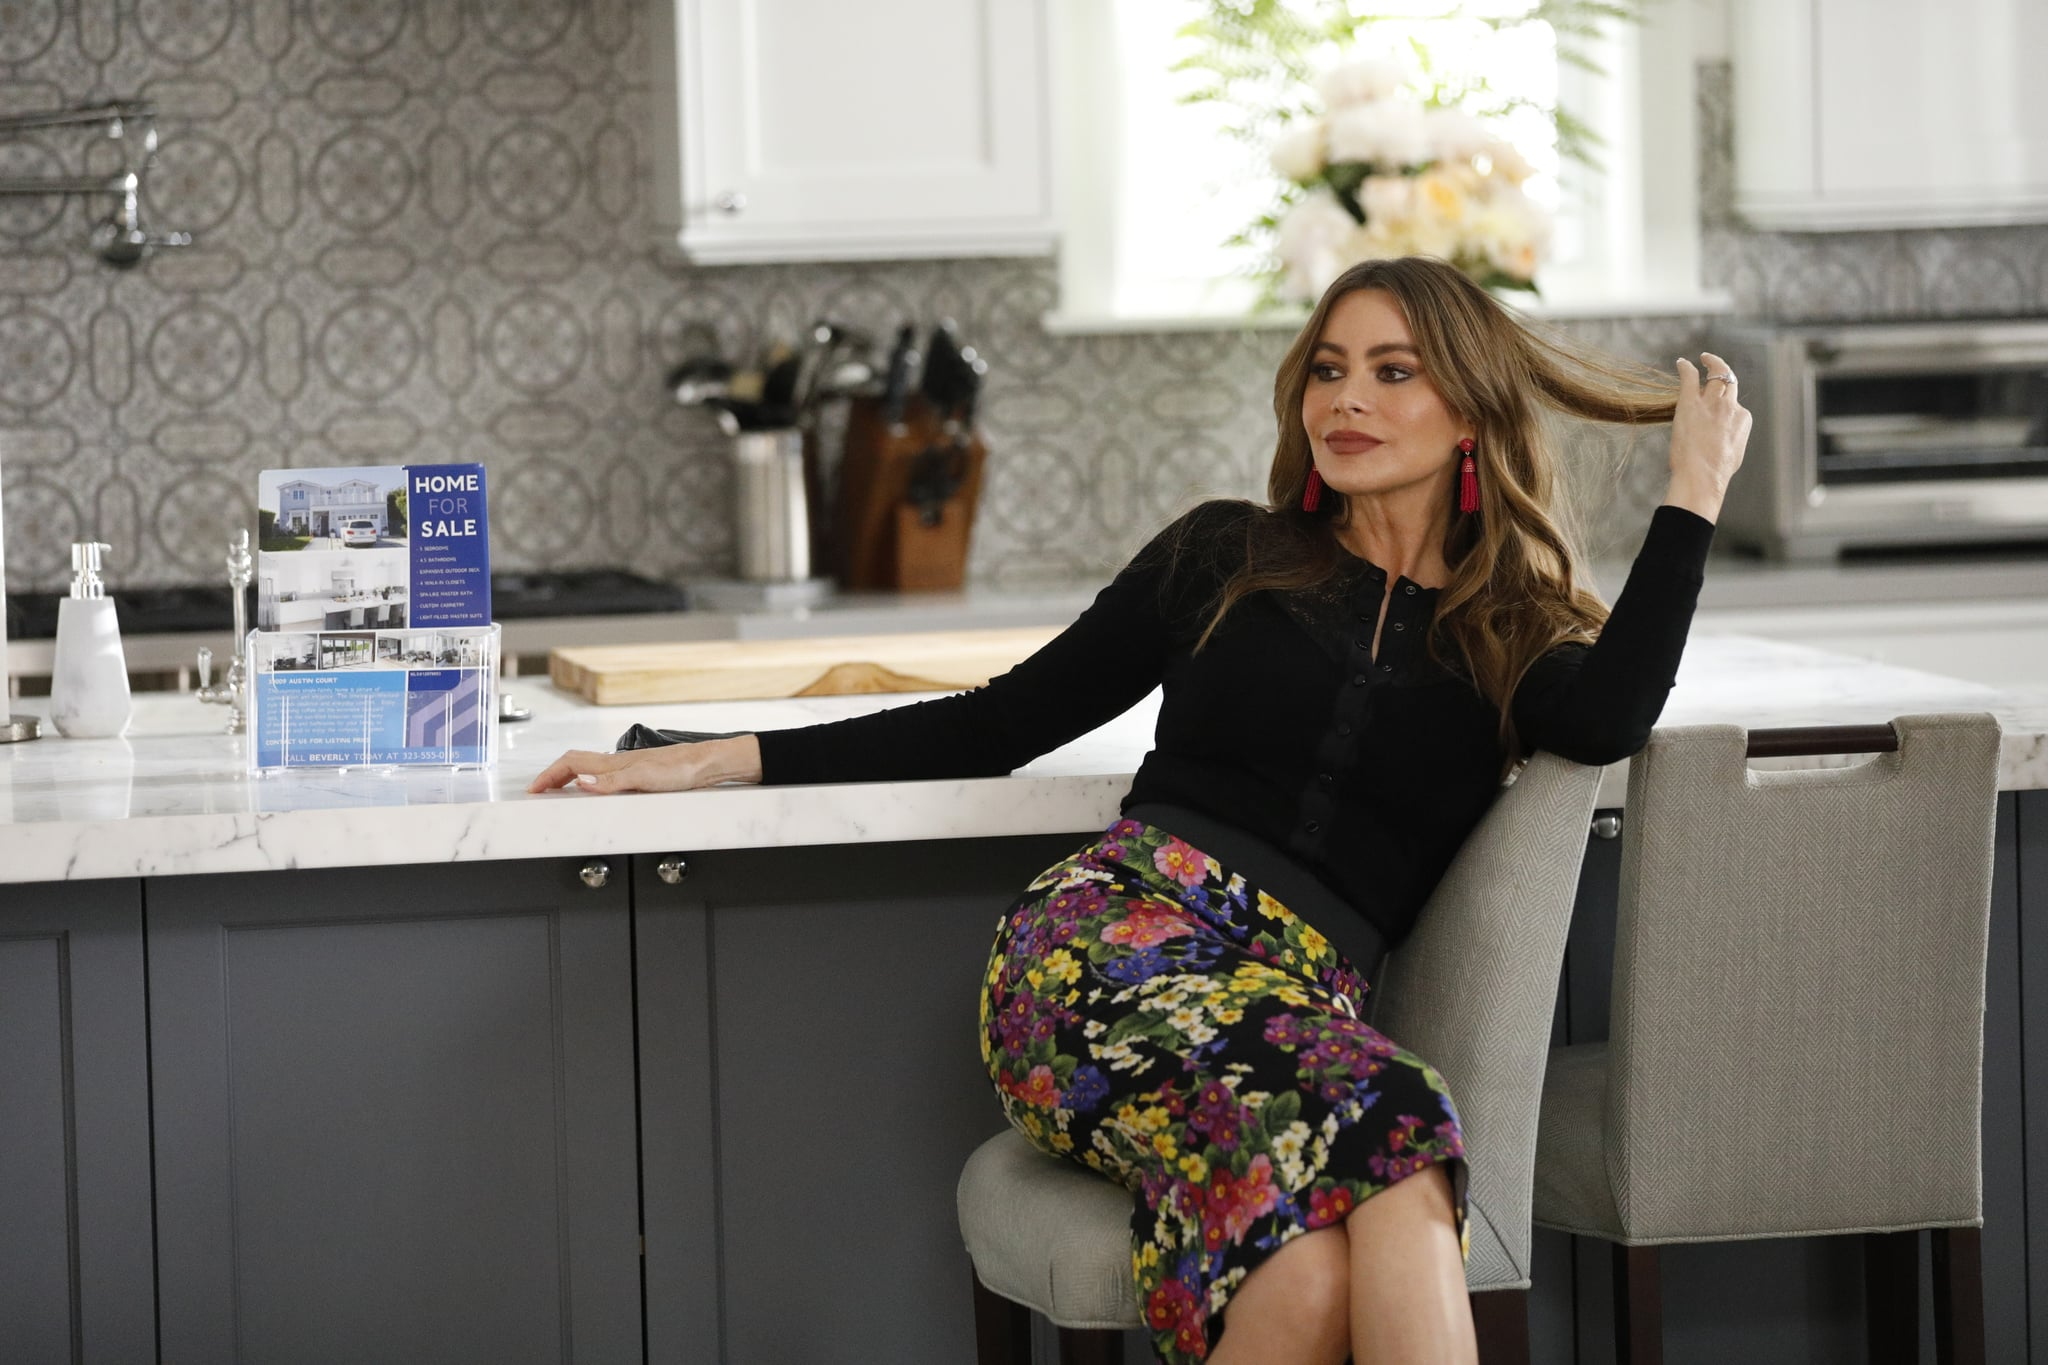 Say What You Want, But Sofia Vergara Has Broken Barriers For Latinxs on Primetime TV and Beyond